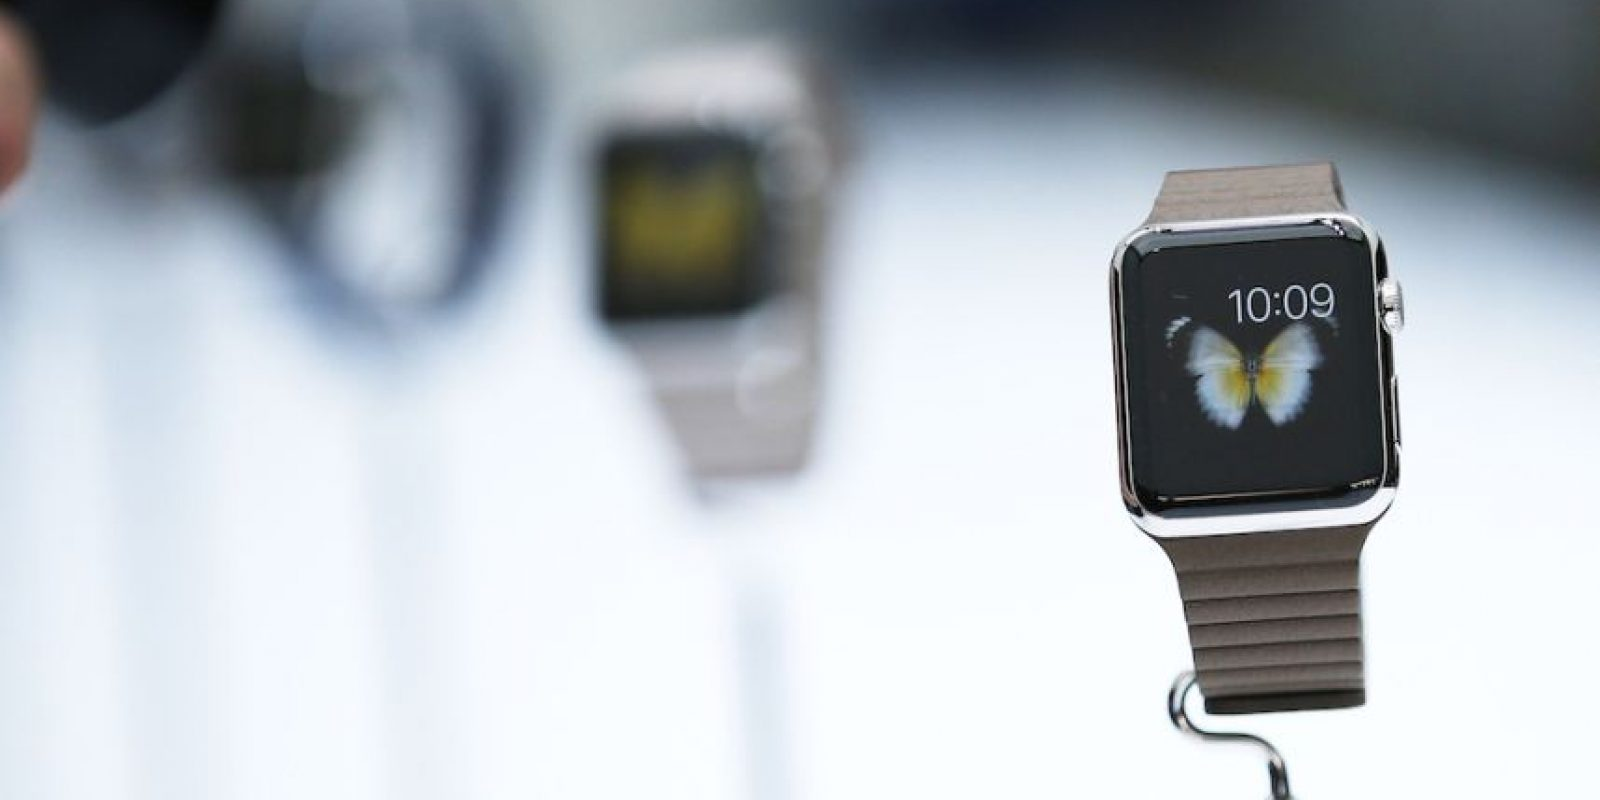 Modelos: Apple Watch, Apple Watch Sport y Apple Watch Edition con oro de 18 kilates. Foto: Getty Images